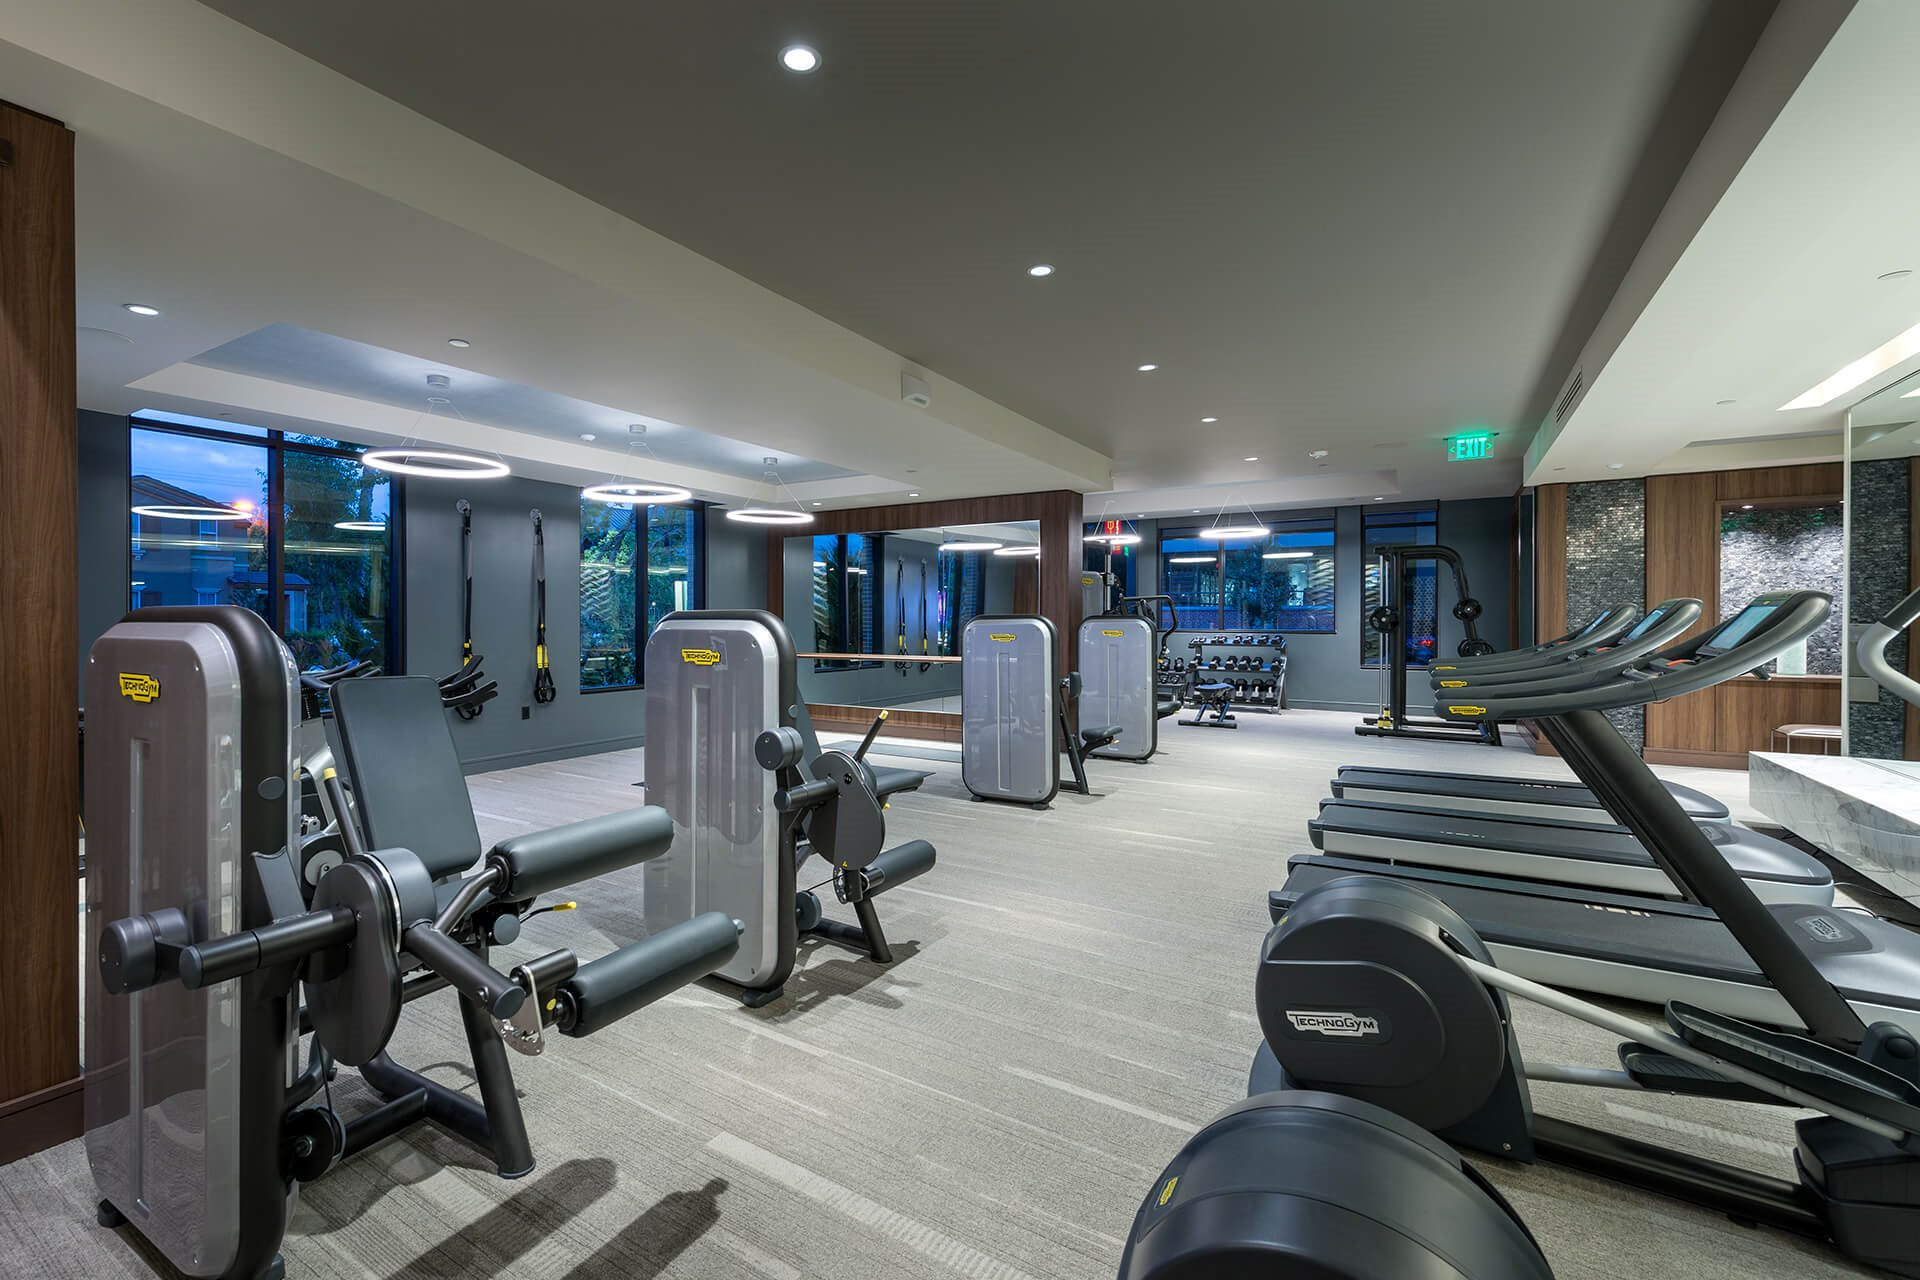 TechnoGym Cardio Equipment at Cannery Park by Windsor, San Jose, CA